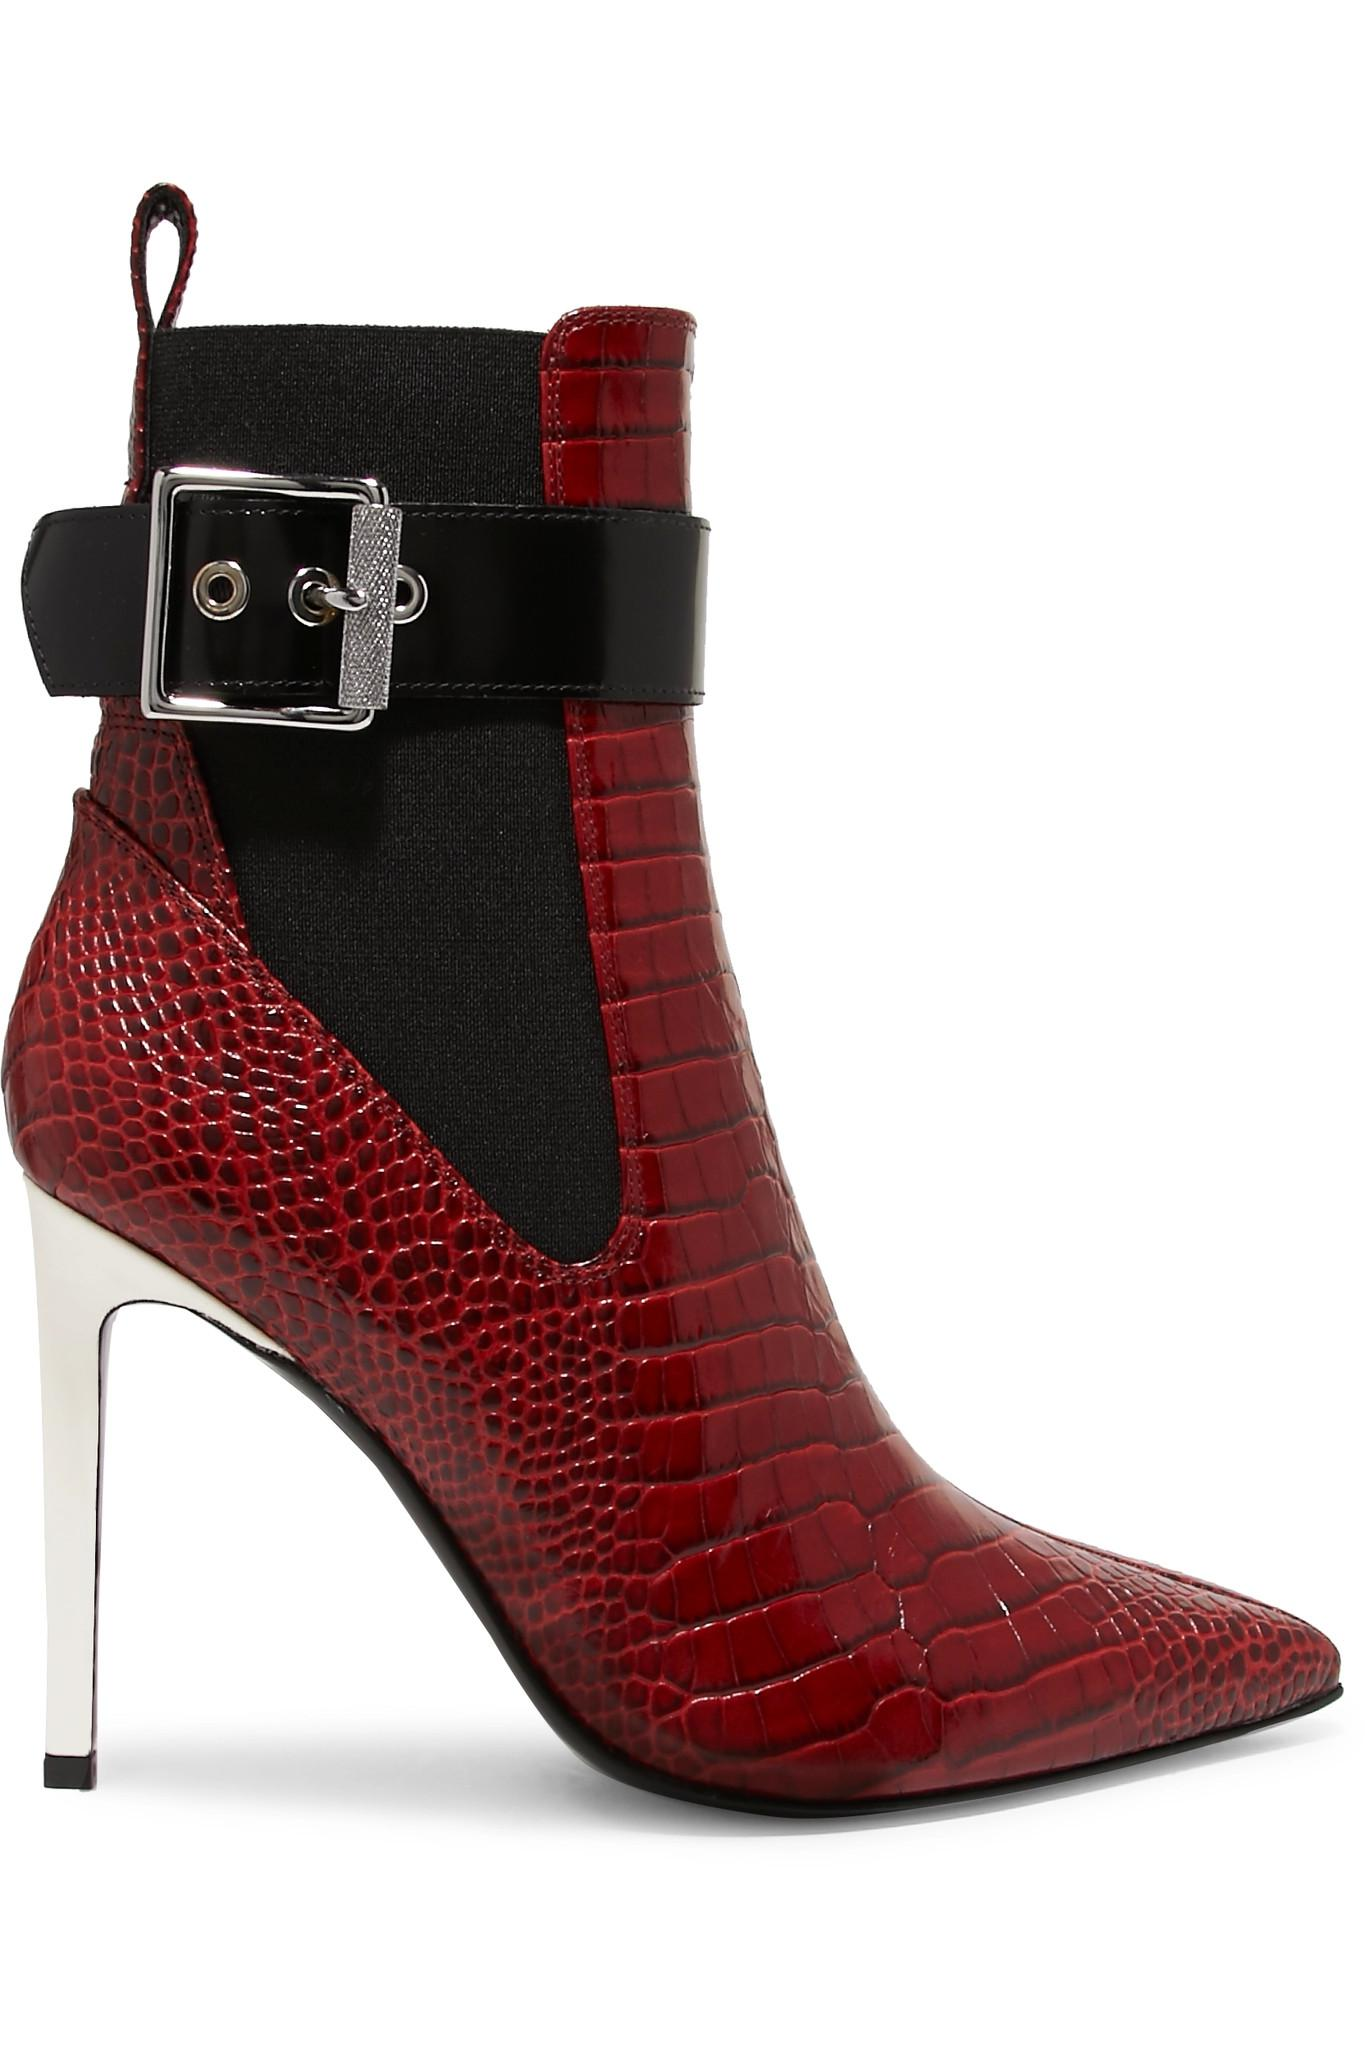 Le Meilleur Lyst Rag Bone Wren Buckled Croc Effect Leather Ankle Ce Mois Ci